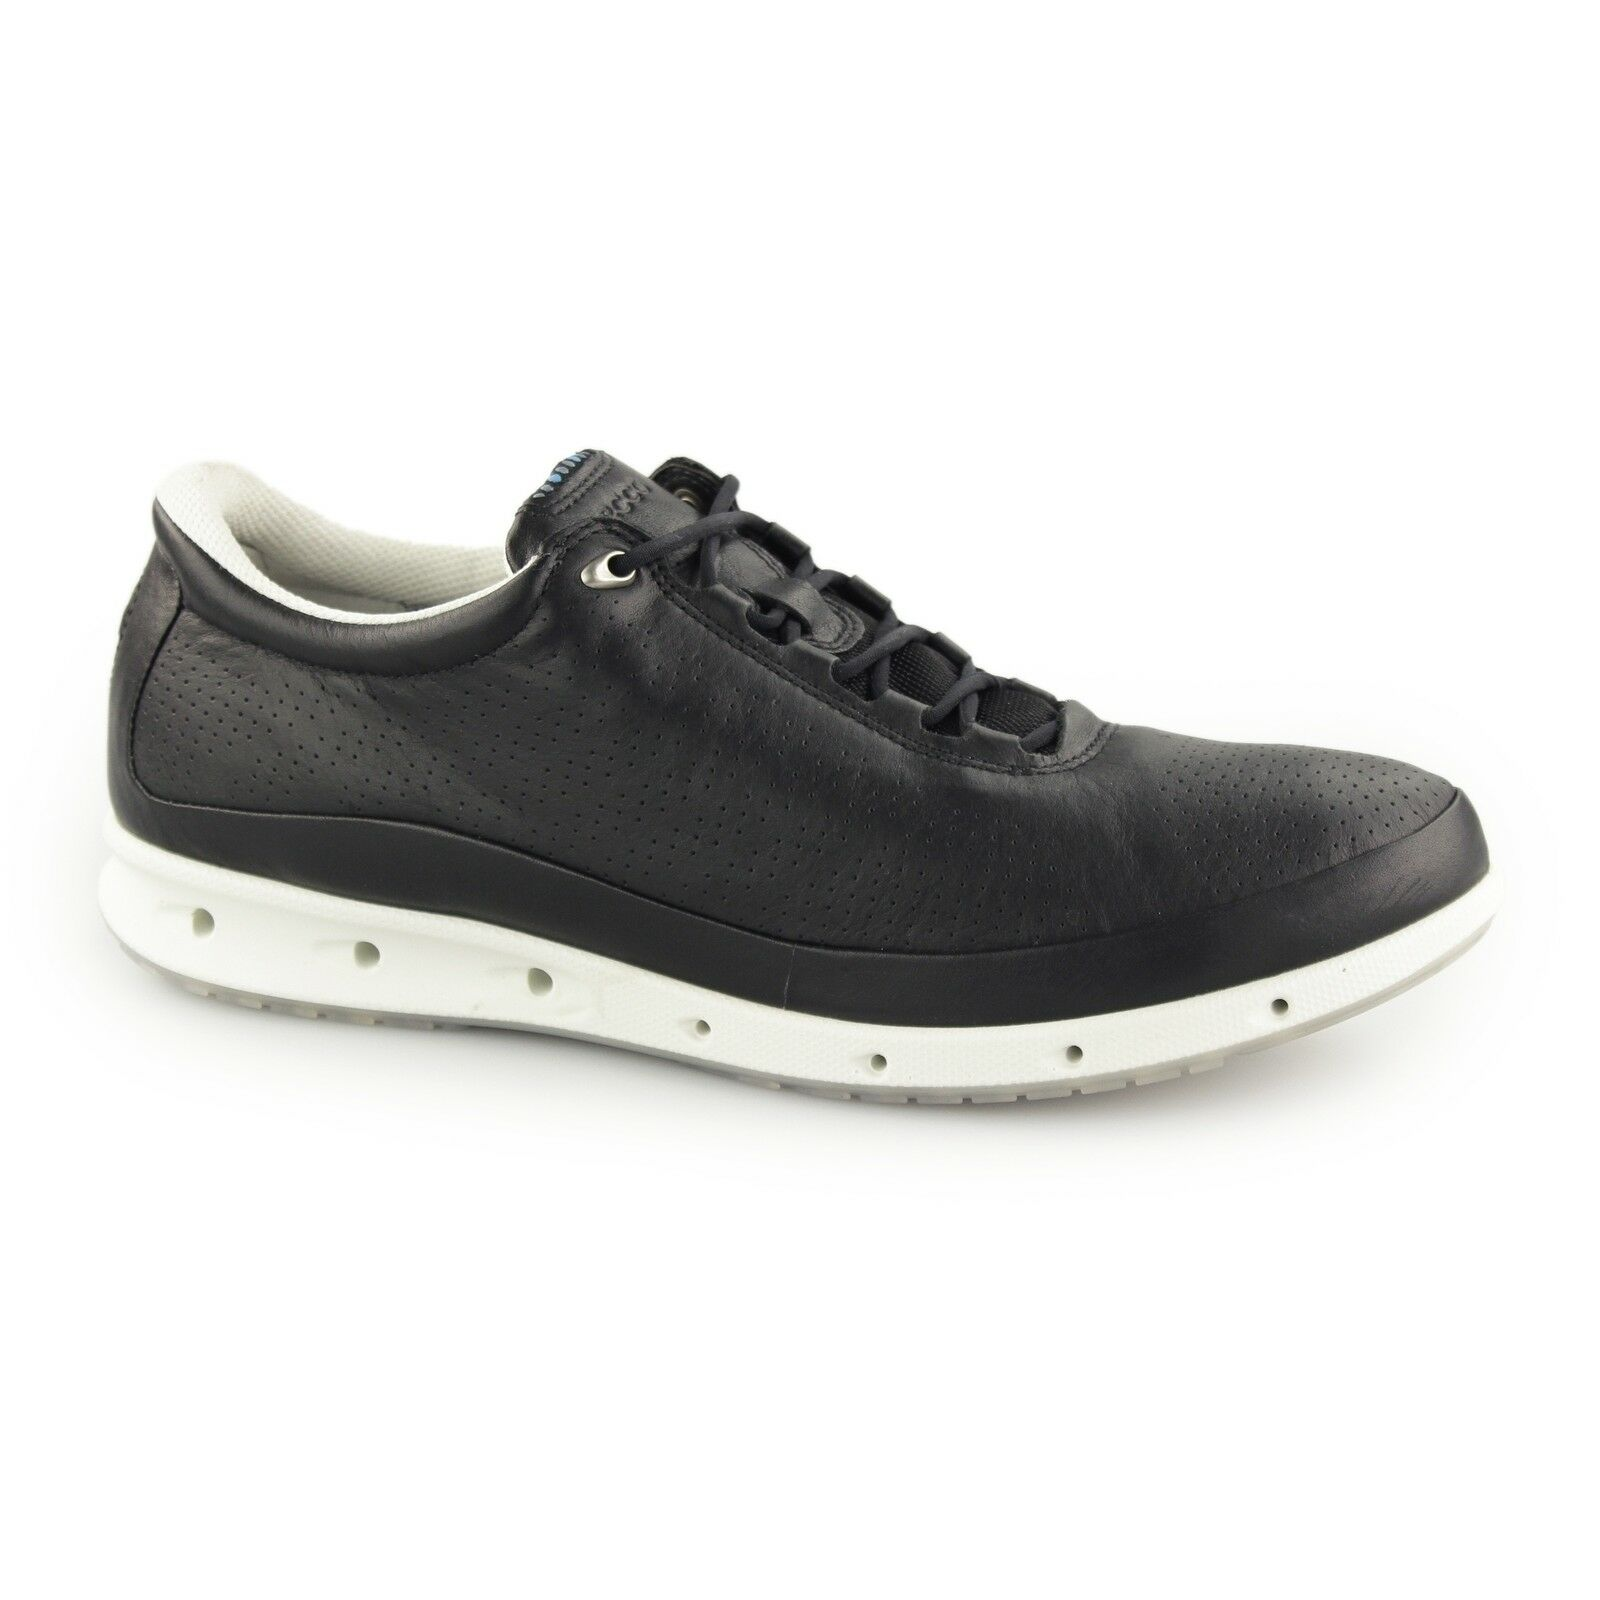 ECCO COOL Ladies Leather Lace Up Casual Gore-Tex Waterproof Trainers Black